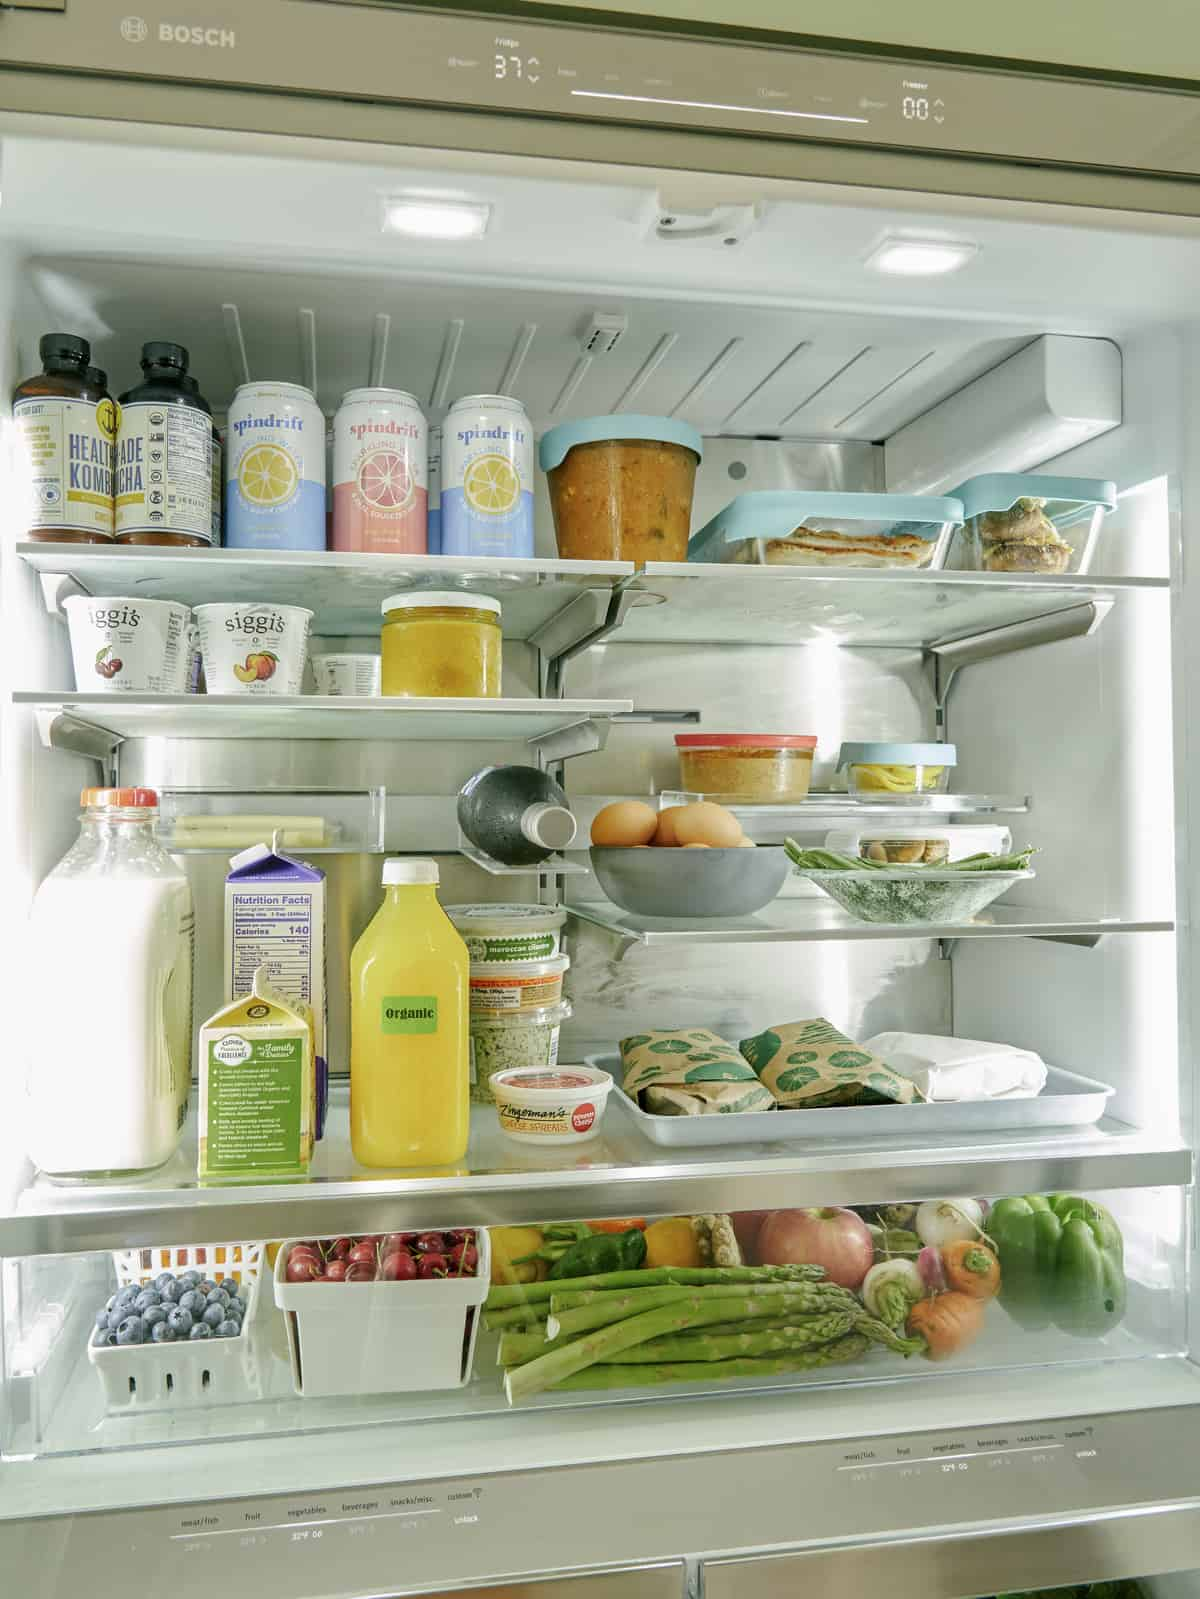 The inside of a refrigerator filled with food and drinks.